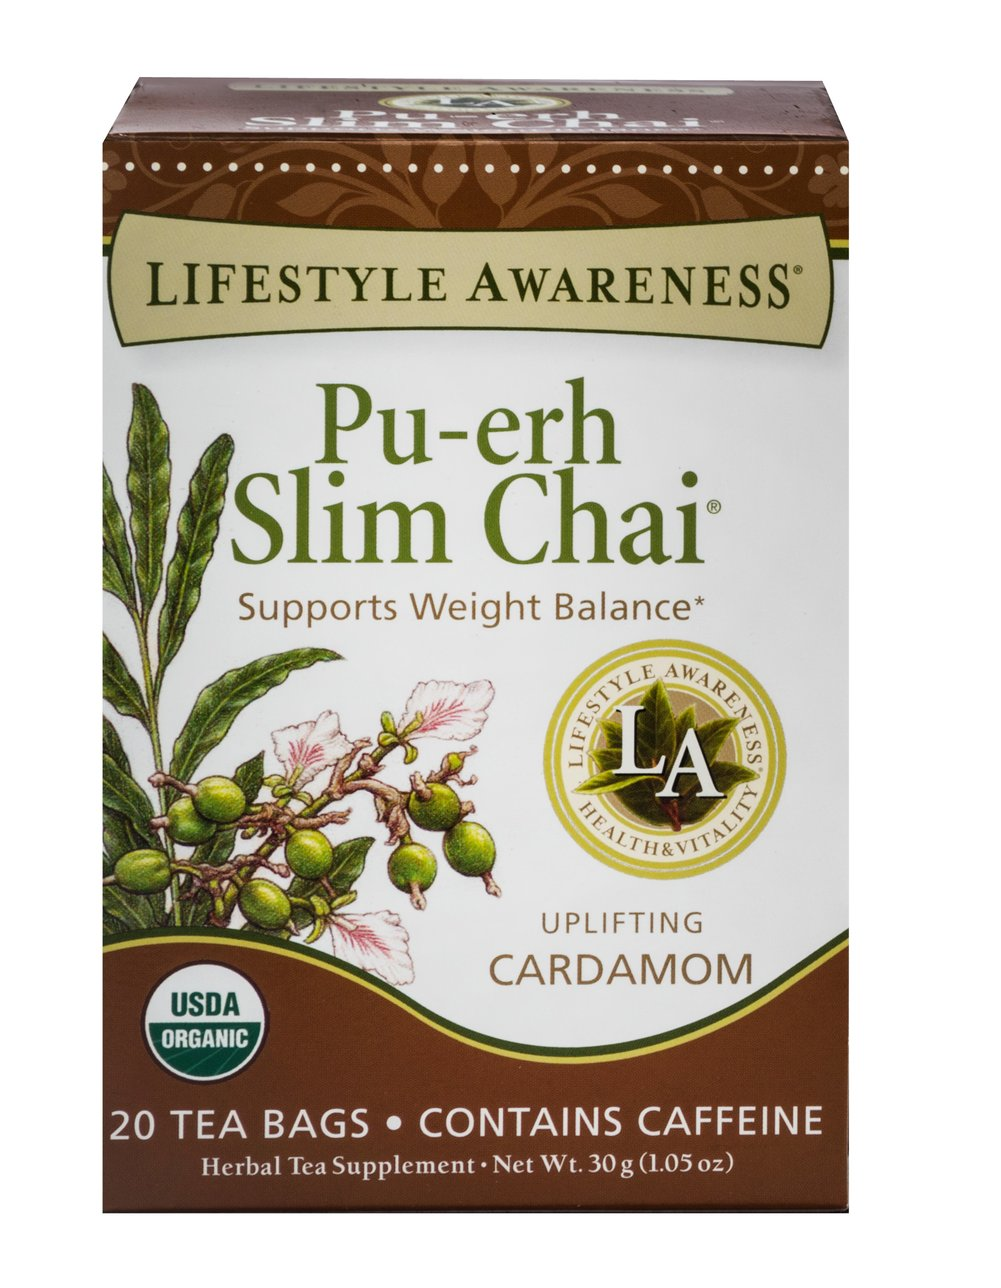 Organic Pu-erh Slim Chai Tea <p><strong>From the Manufacturer:</strong></p><p>Pu-erh Slim Chai tea is a fermented black tea which has been used to promote well-being. Refreshing Rooibos and fragrant Cardamom uplift your senses any time of day. This tea offers a lively balance of flavors to help you live the lifestyle you were meant to live. Sip and be well!</p> 20 Bags  $6.99